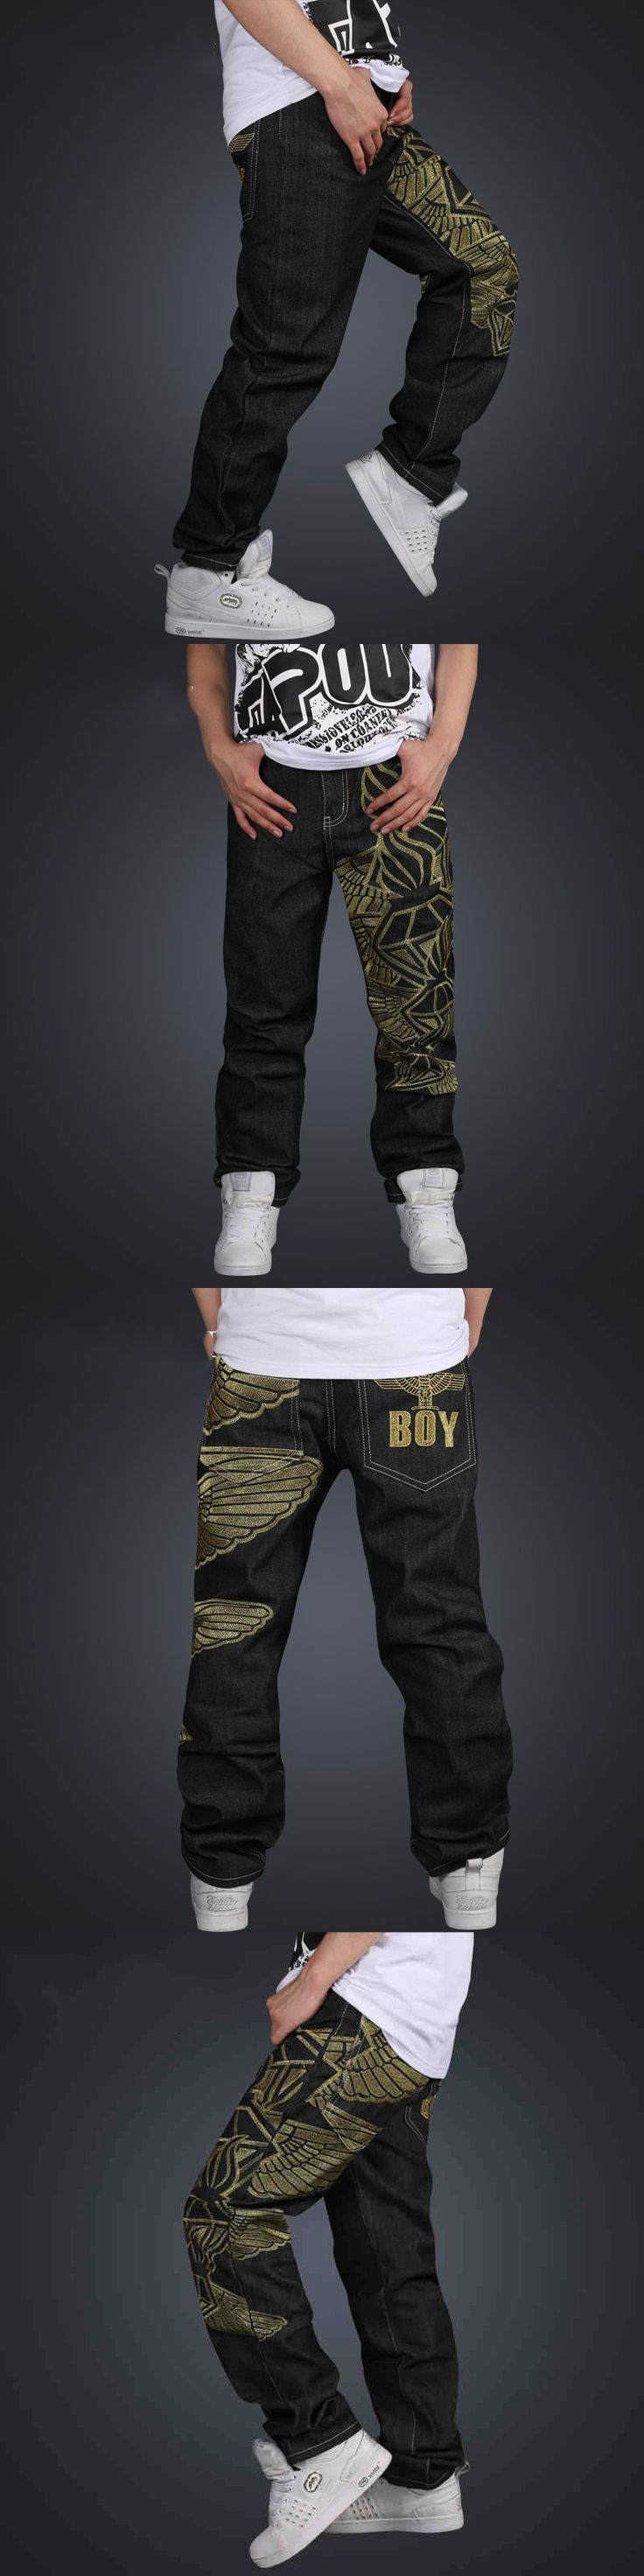 Hot Sale Jeans straight jeans hip-hop style hip-hop pants male jeans Free Shipping